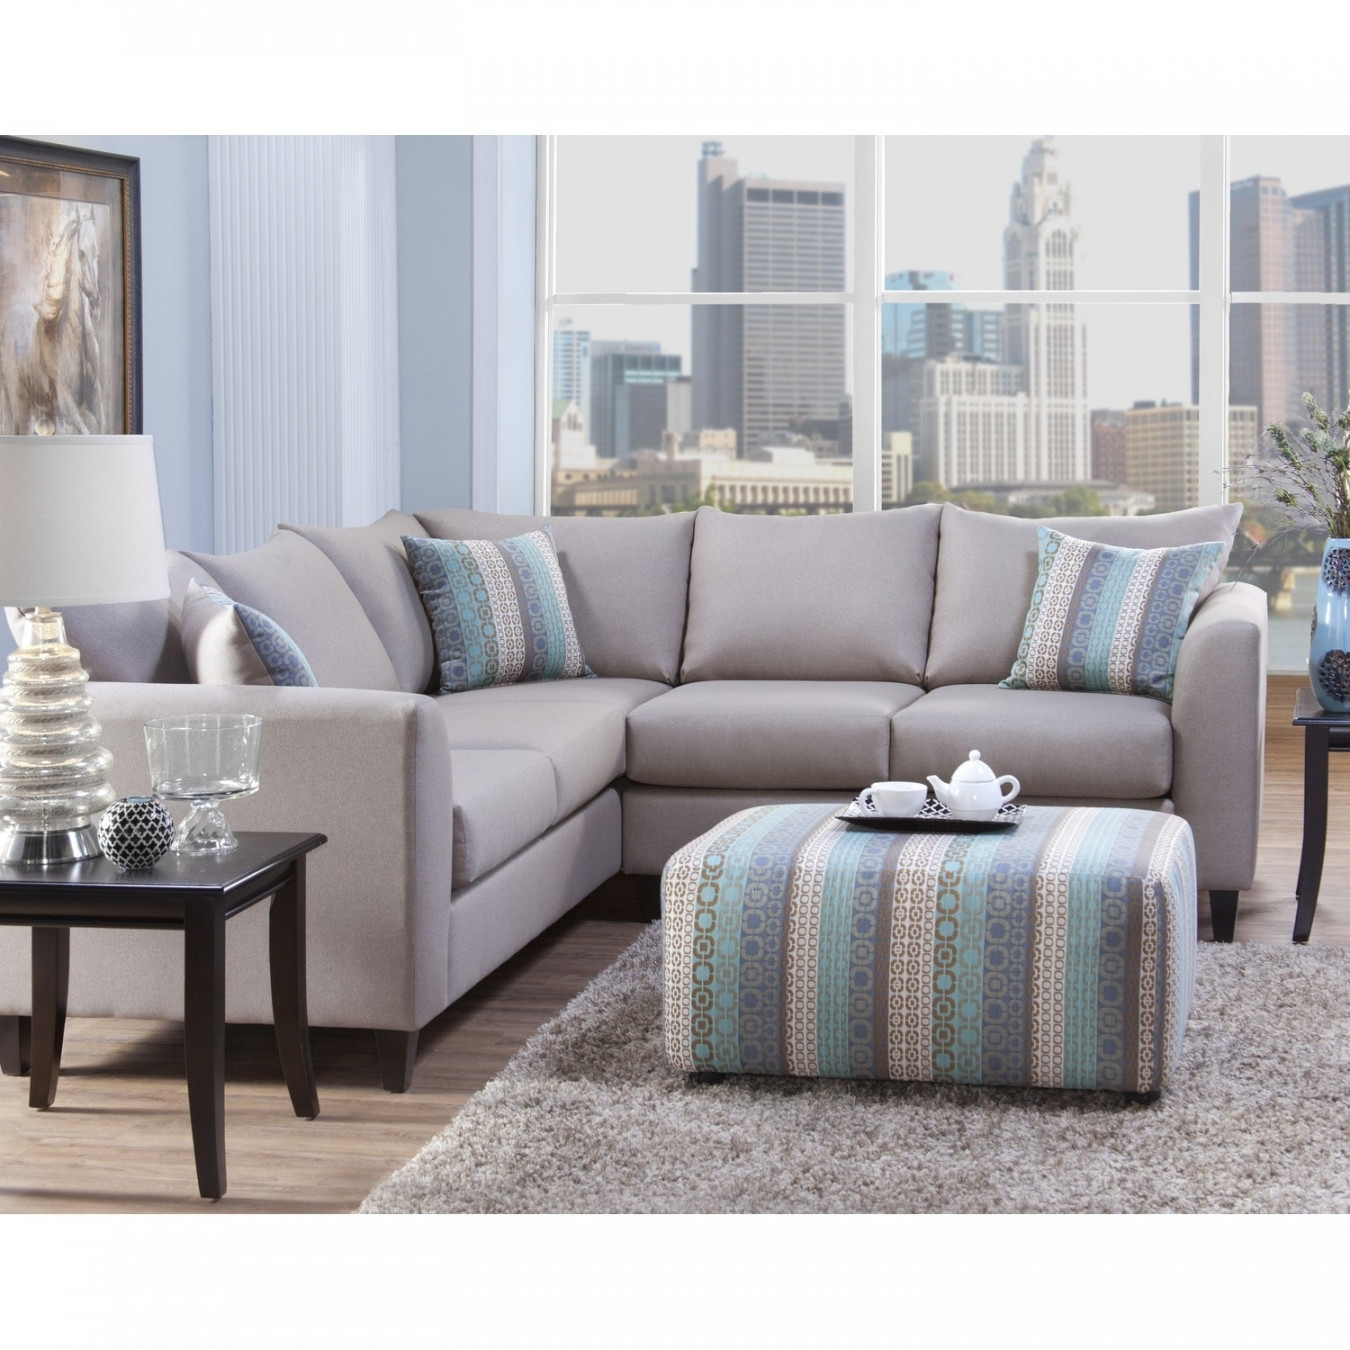 Unique Best Wayfair Sectional Sofa – Mediasupload | House Decoration With Regard To Wayfair Sectional Sofas (Image 8 of 10)